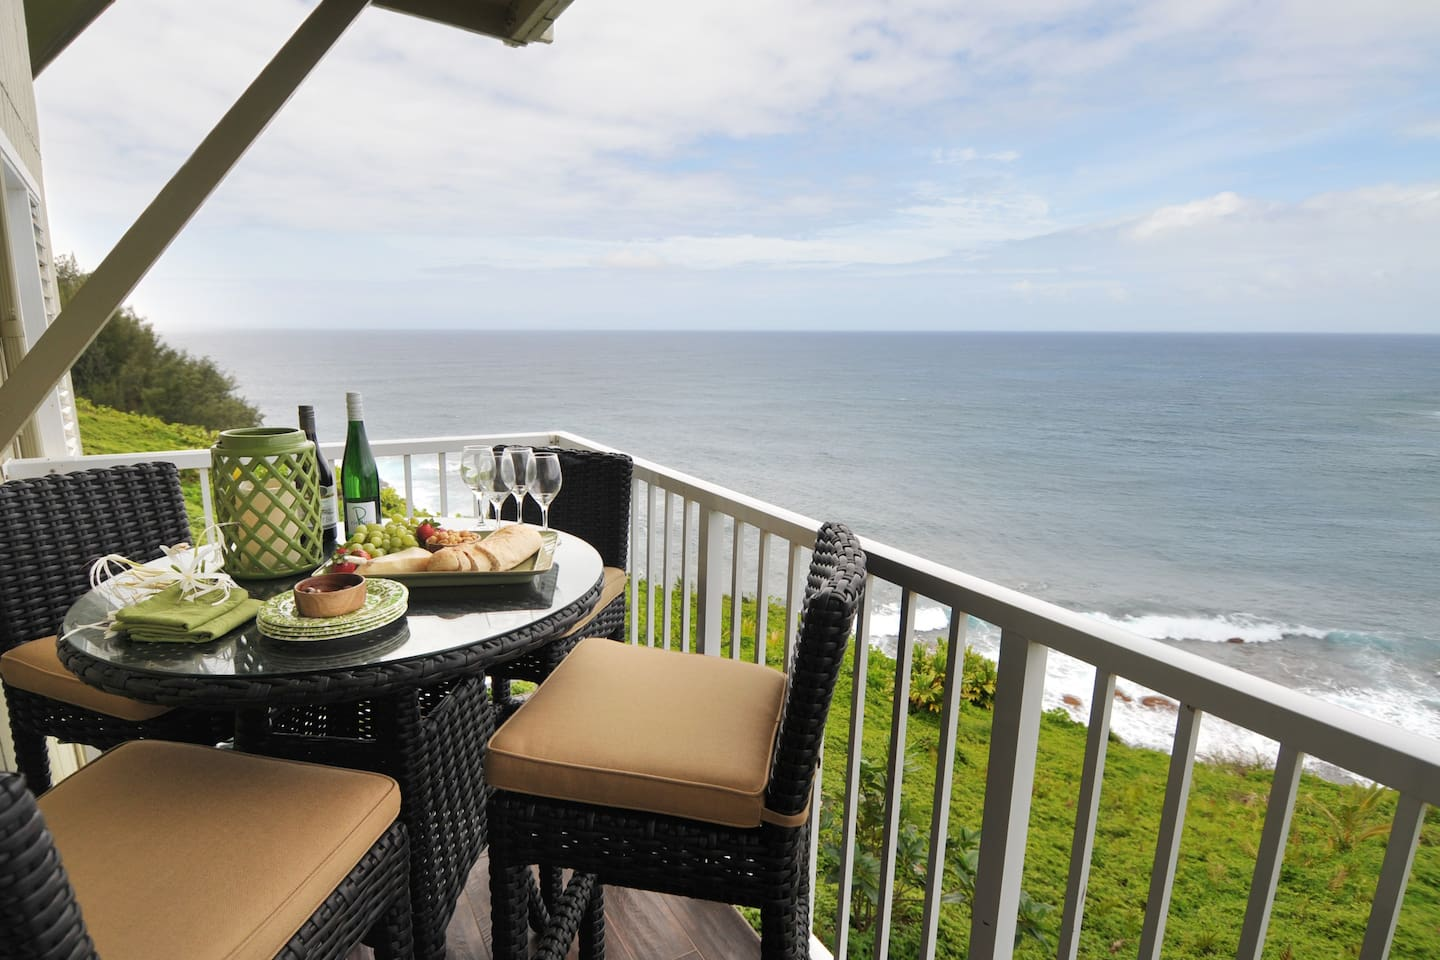 The lanai is the perfect place to enjoy a meal, a nap or good friends.